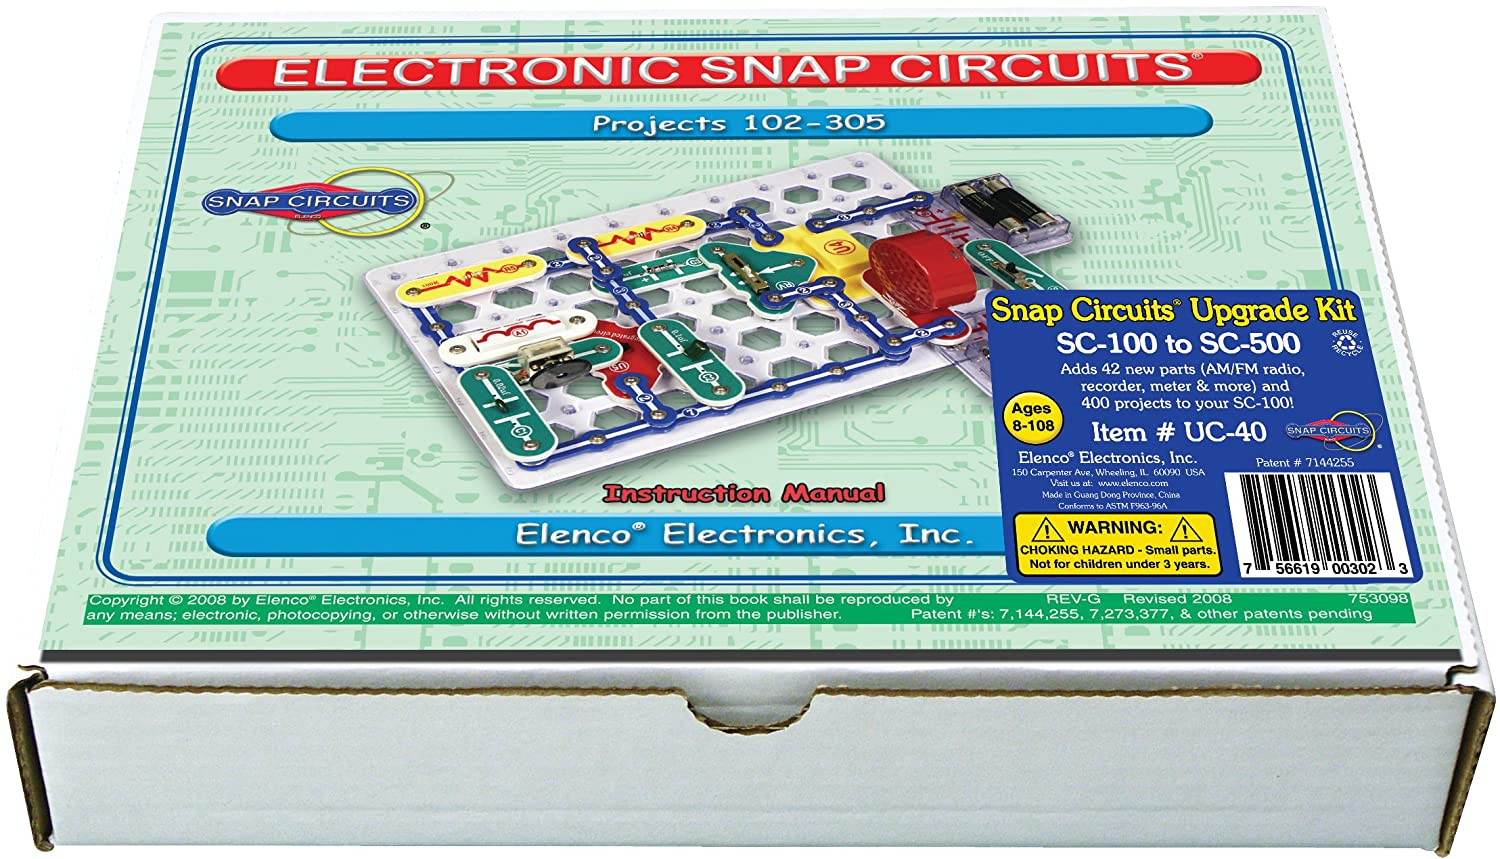 Sc100 Snap Circuits Jr Manual Electronic And Pololu Additional Parts Included With 300in1 500 Amazoncom Uc 40 Upgrade Kit Sc 100 To Toys Games